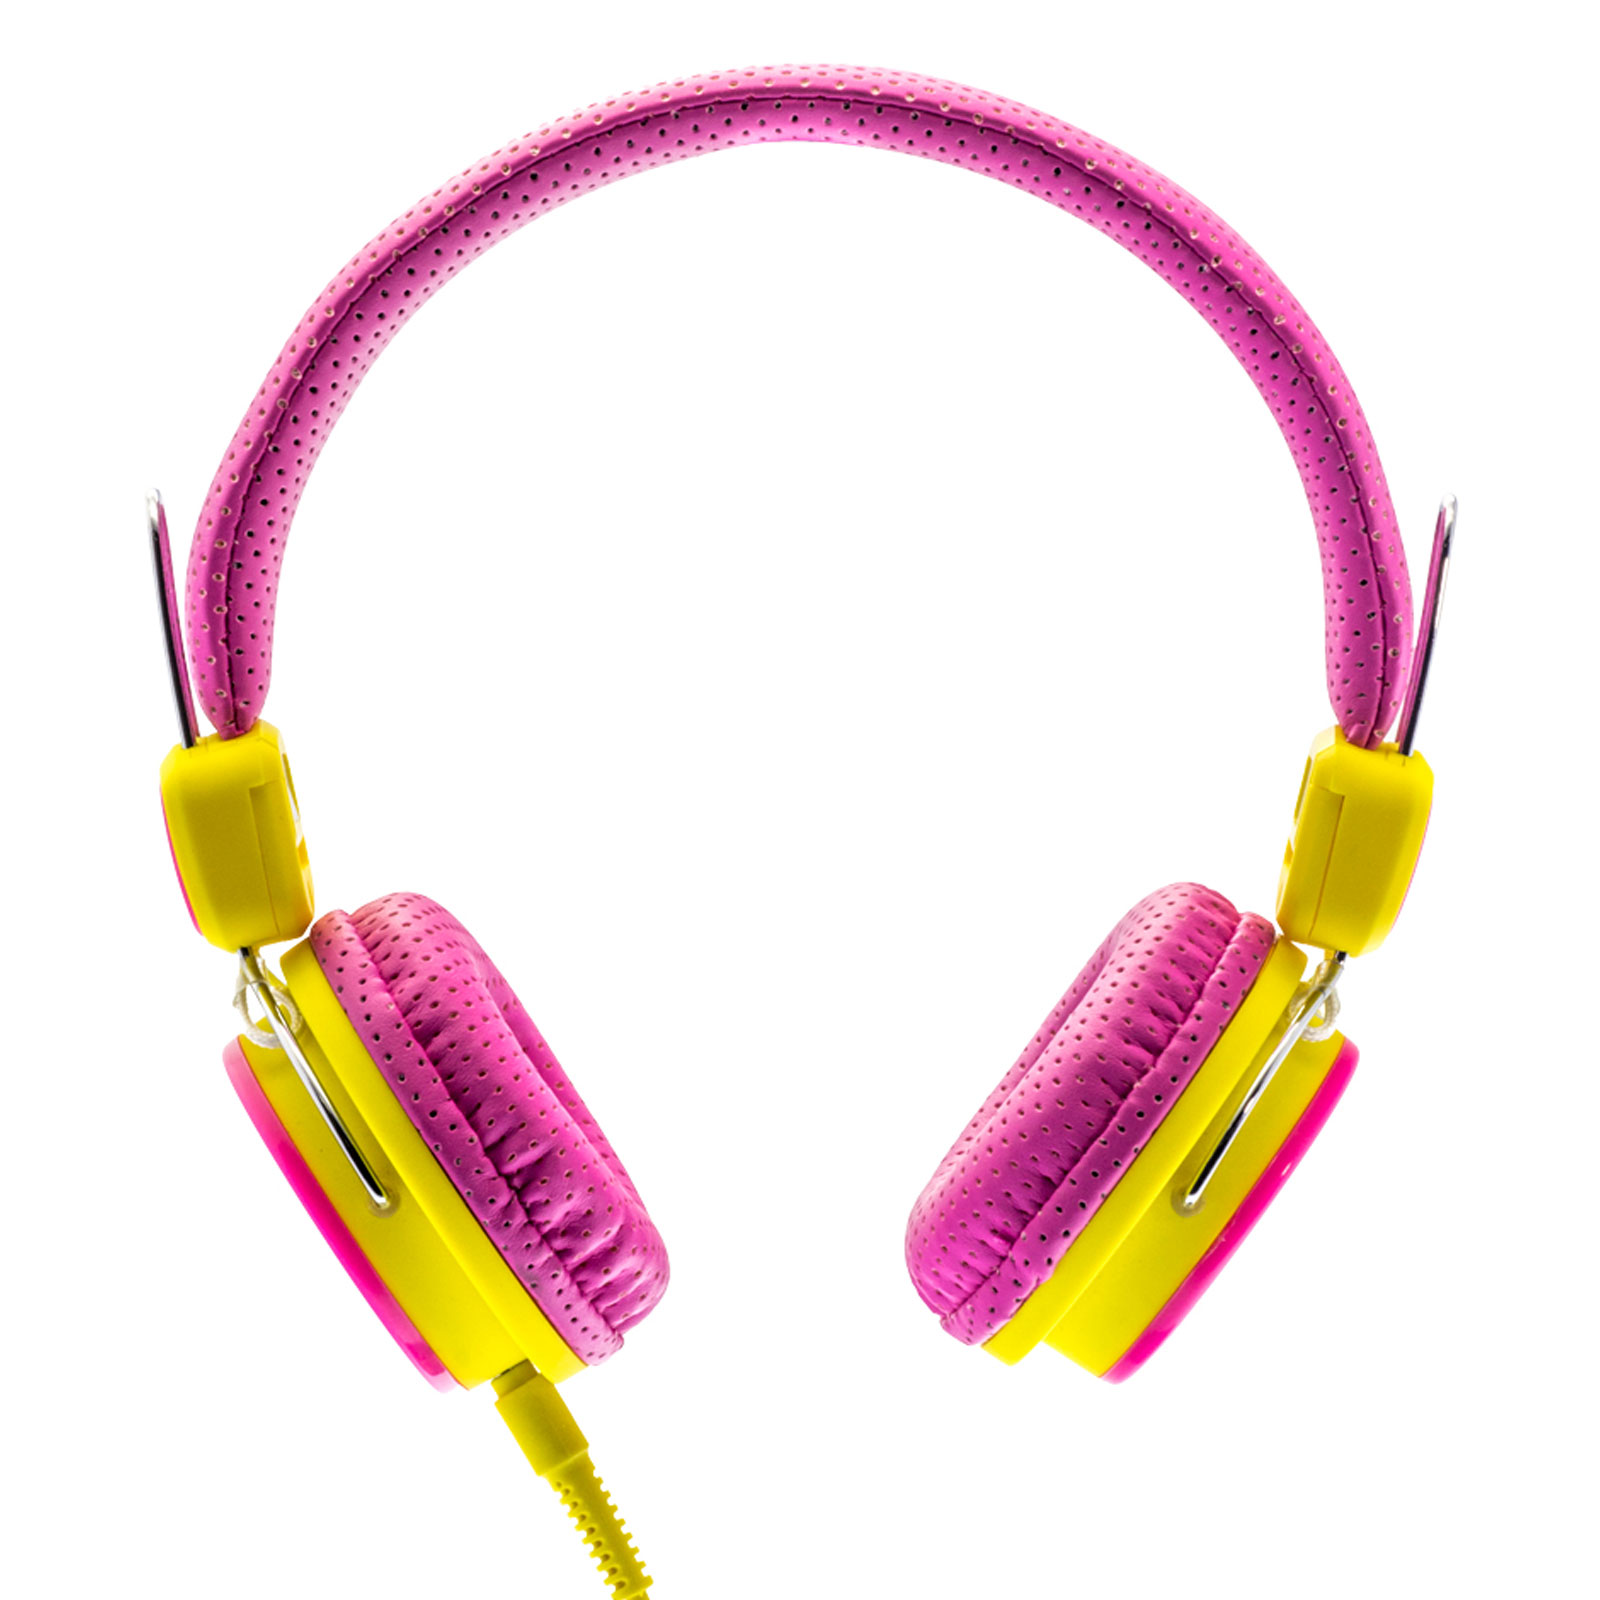 ebce50d6e5a Moki Kids Safe Headphones Pink-Yellow Limited Volume Gaming Music Child  Proof